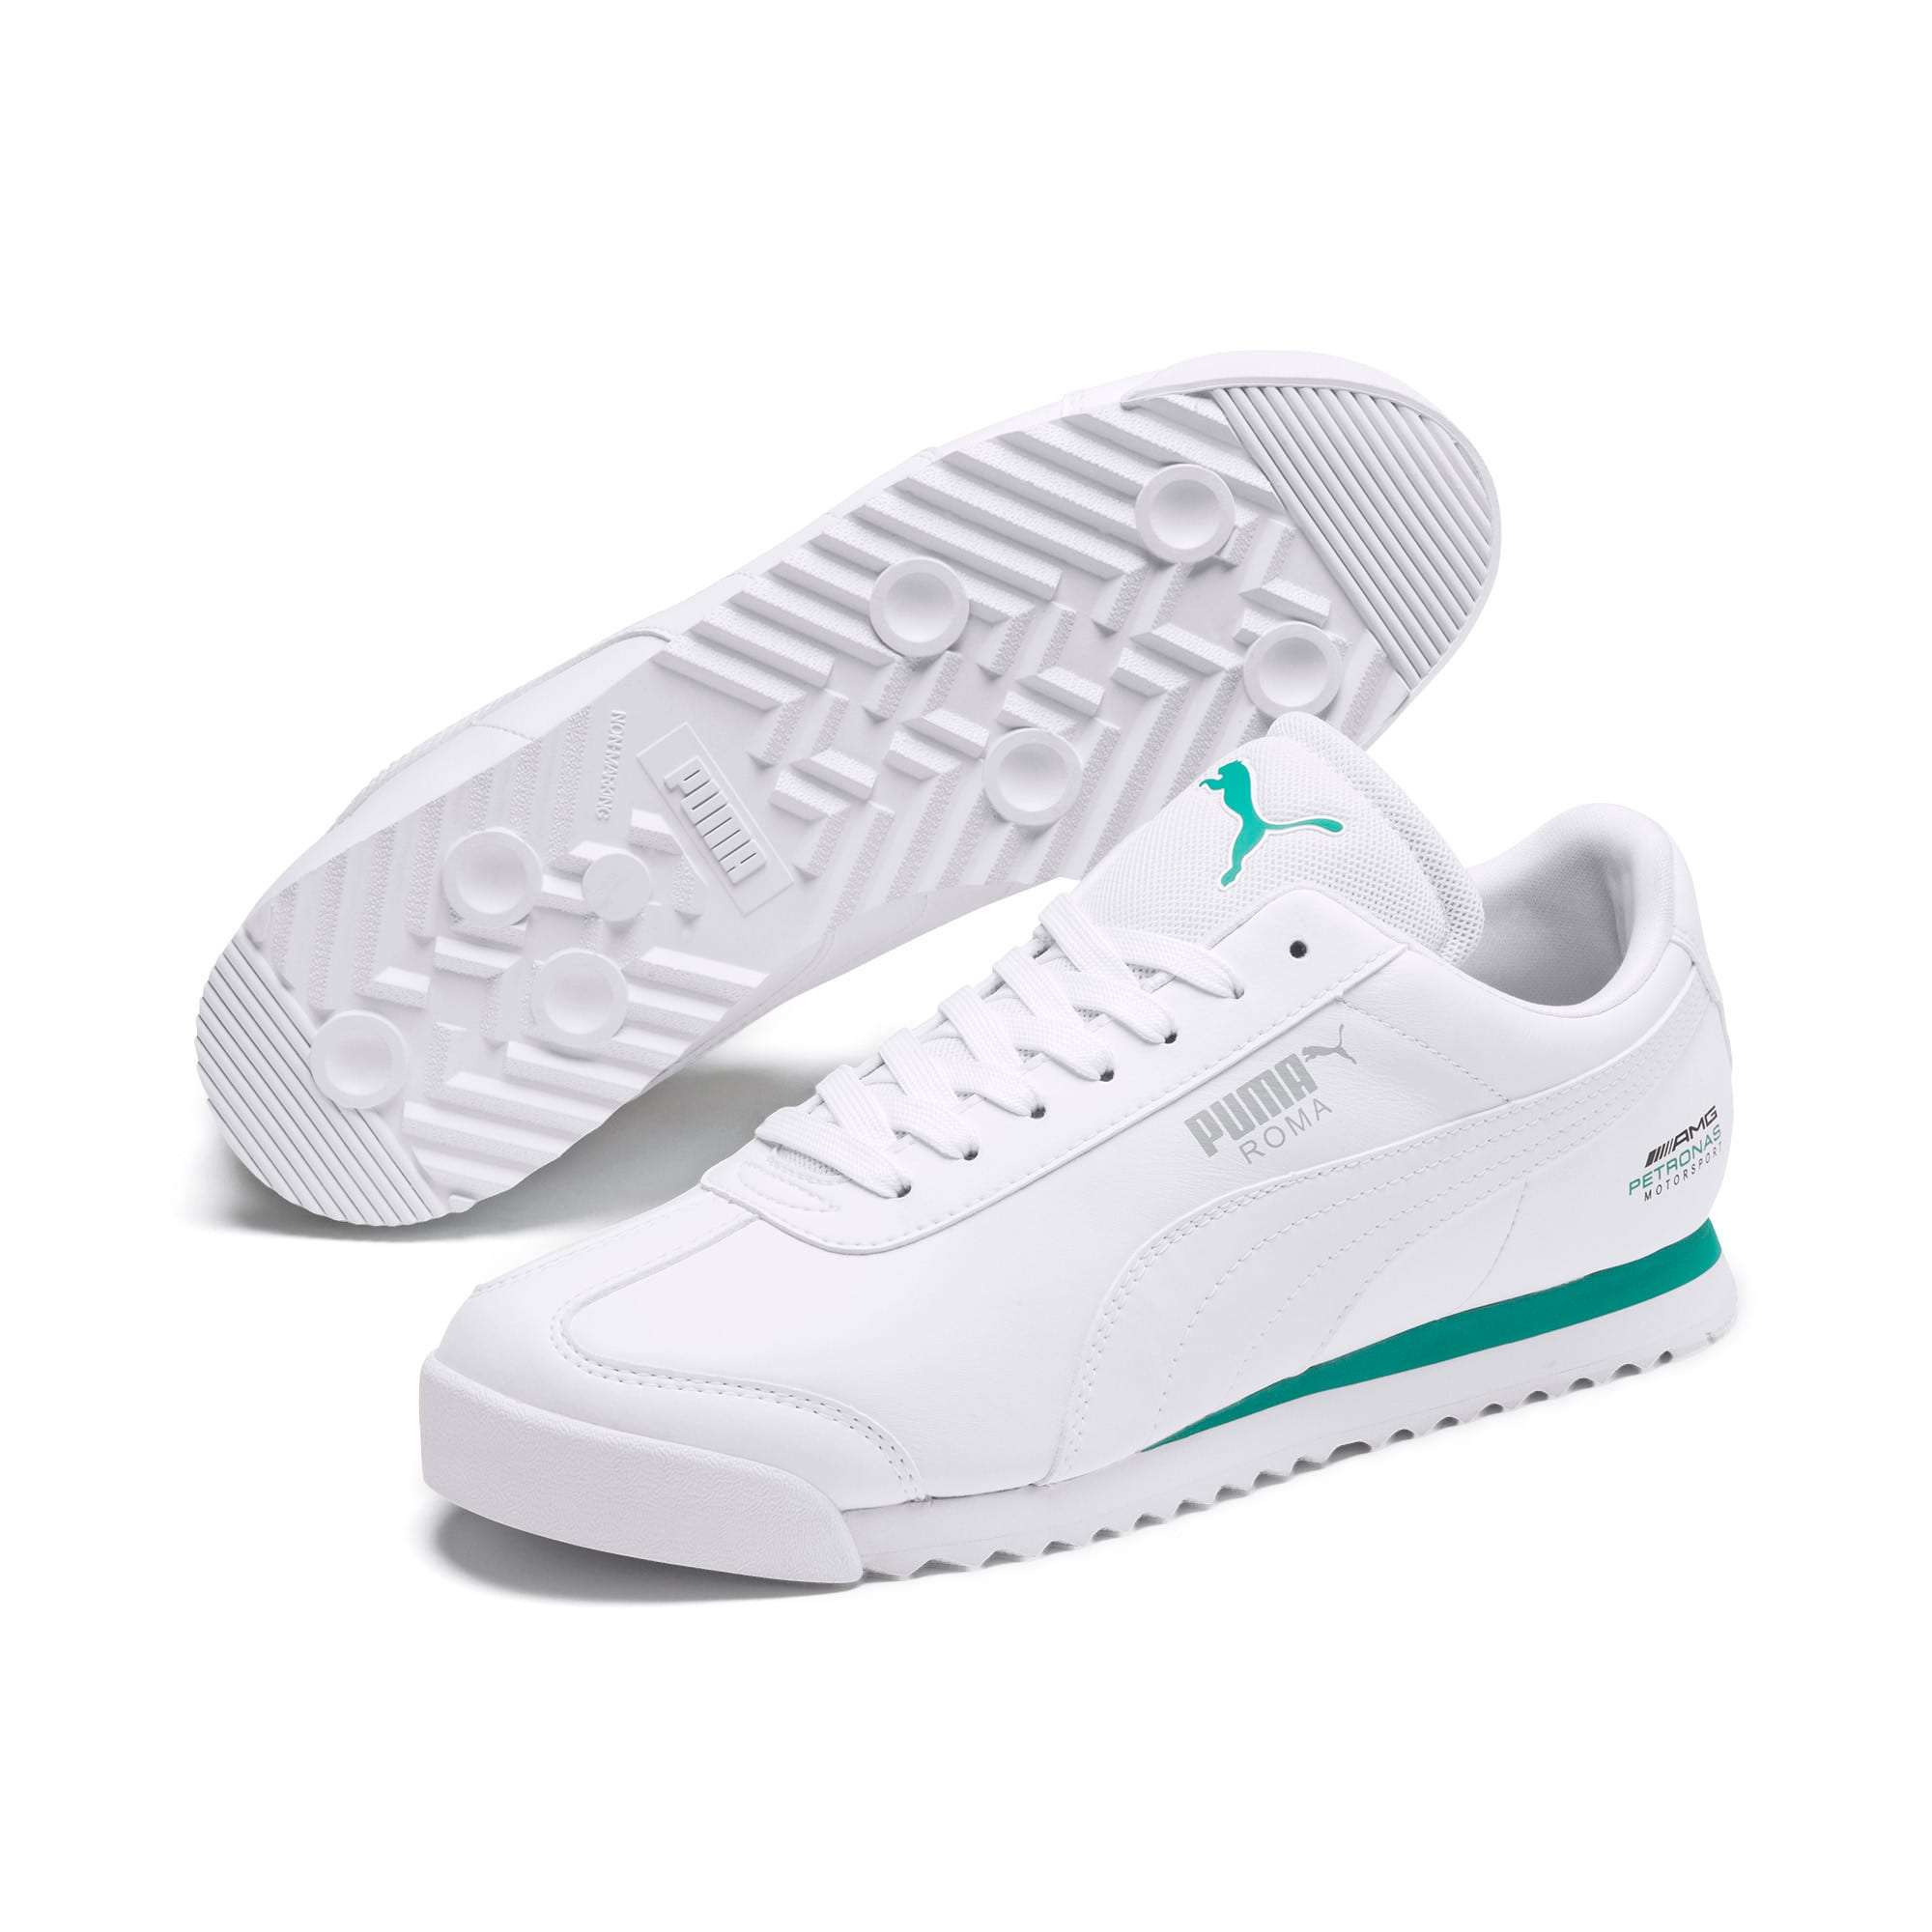 Thumbnail 3 of Mercedes AMG Petronas Roma Men's Sneakers, Puma White-Puma White, medium